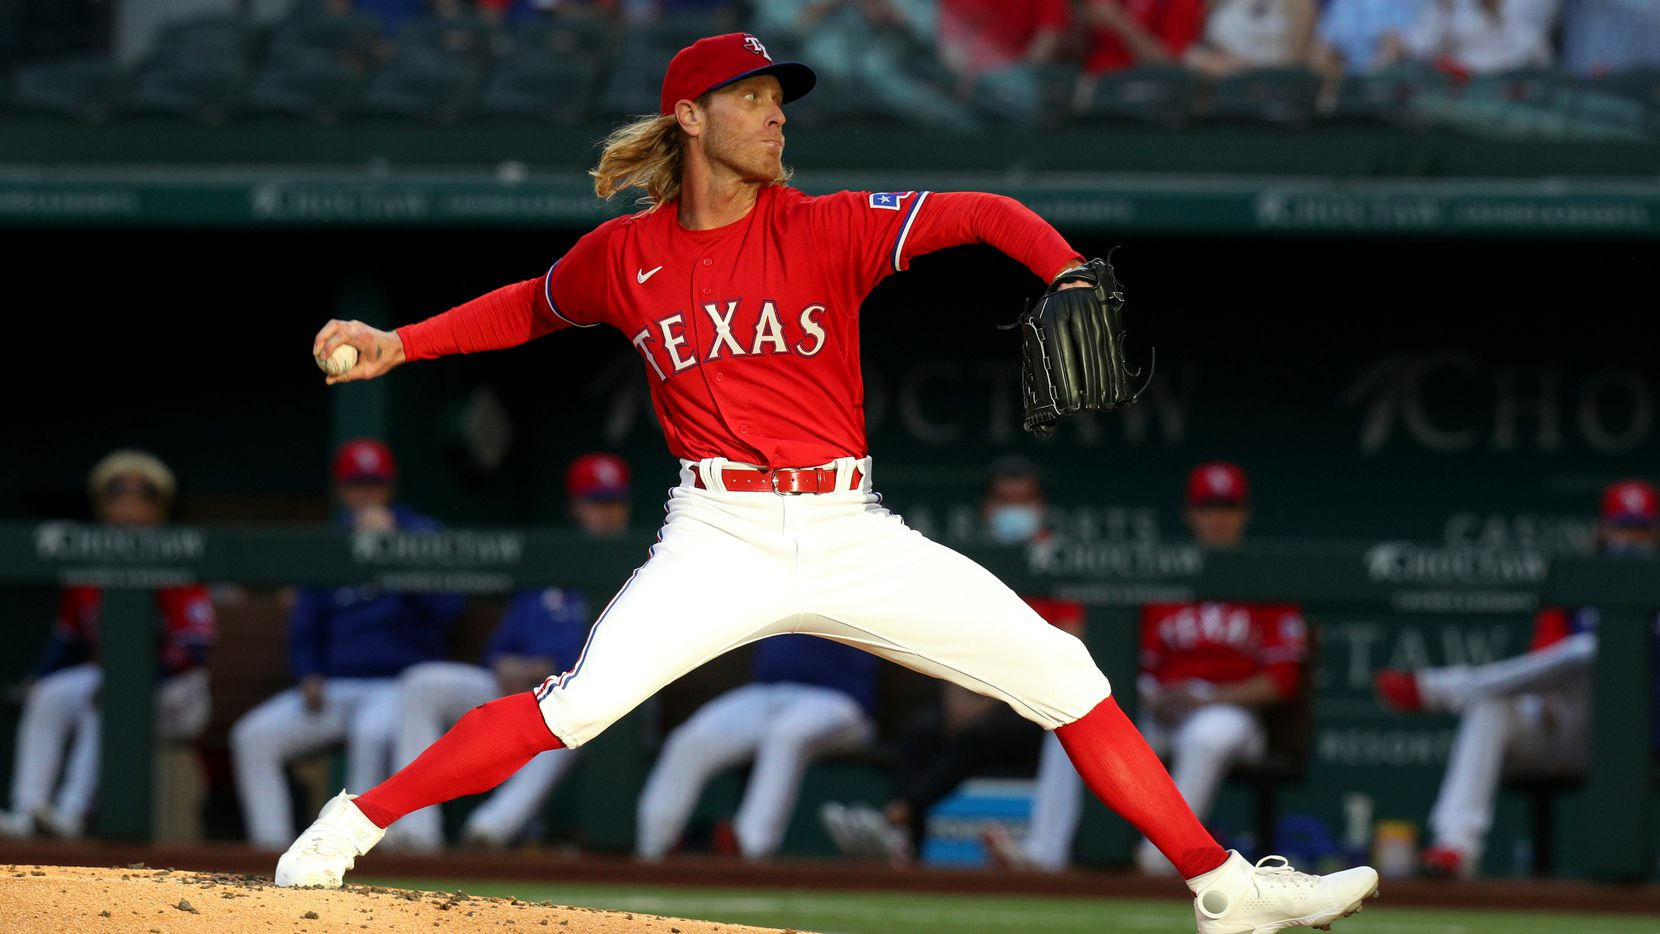 Texas Rangers starting pitcher Mike Foltynewicz throws during the first inning against the Seattle Mariners in a baseball game Friday, May 7, 2021, in Arlington, Texas. (AP Photo/Richard W. Rodriguez)